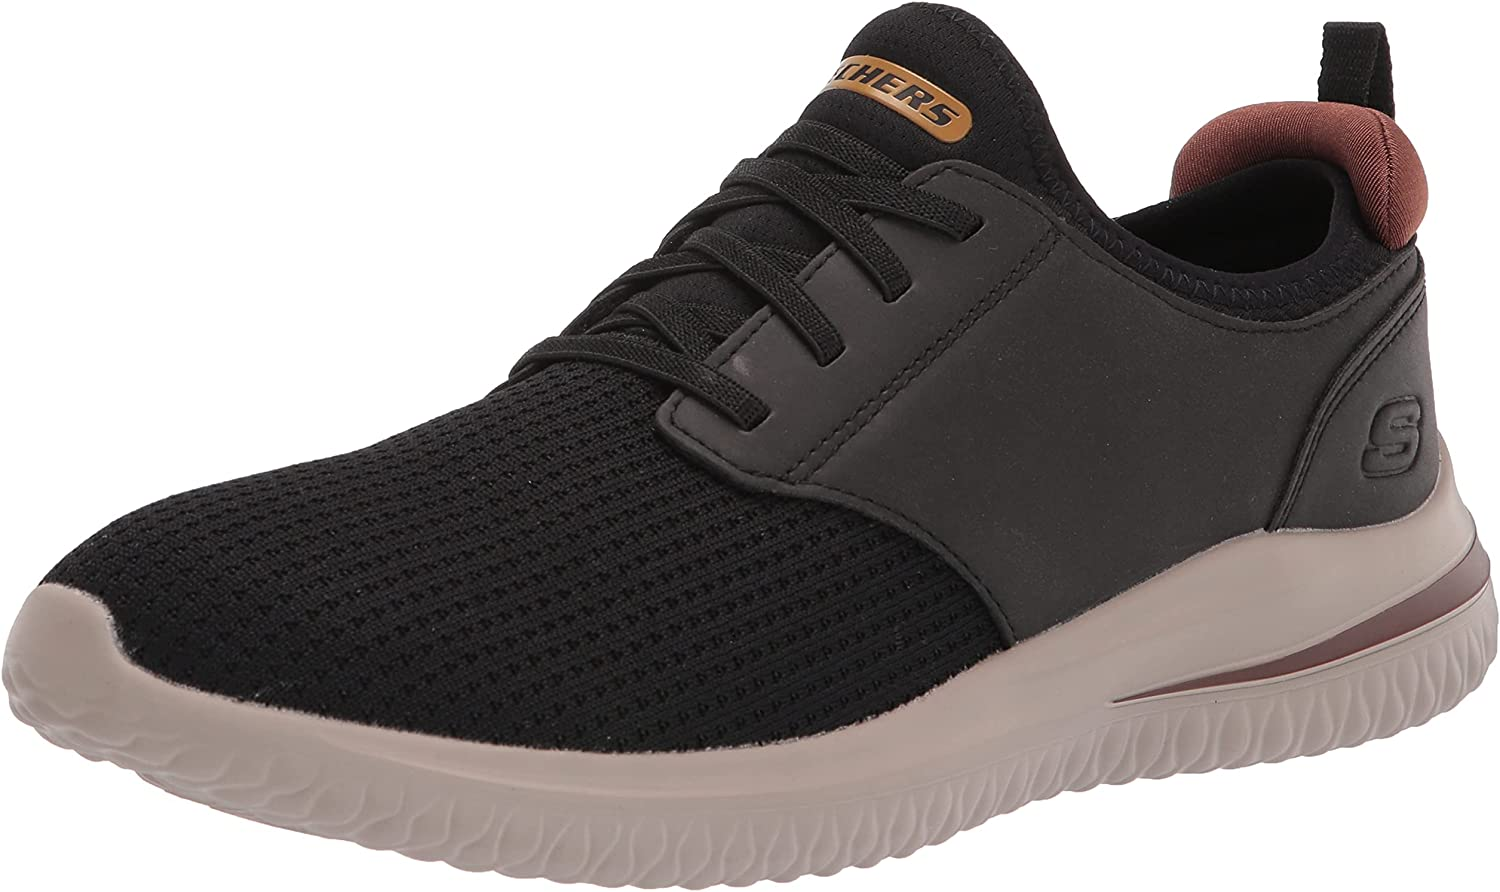 Skechers Men's Delson 3.0 Round Toe Bungee Lace Slip On